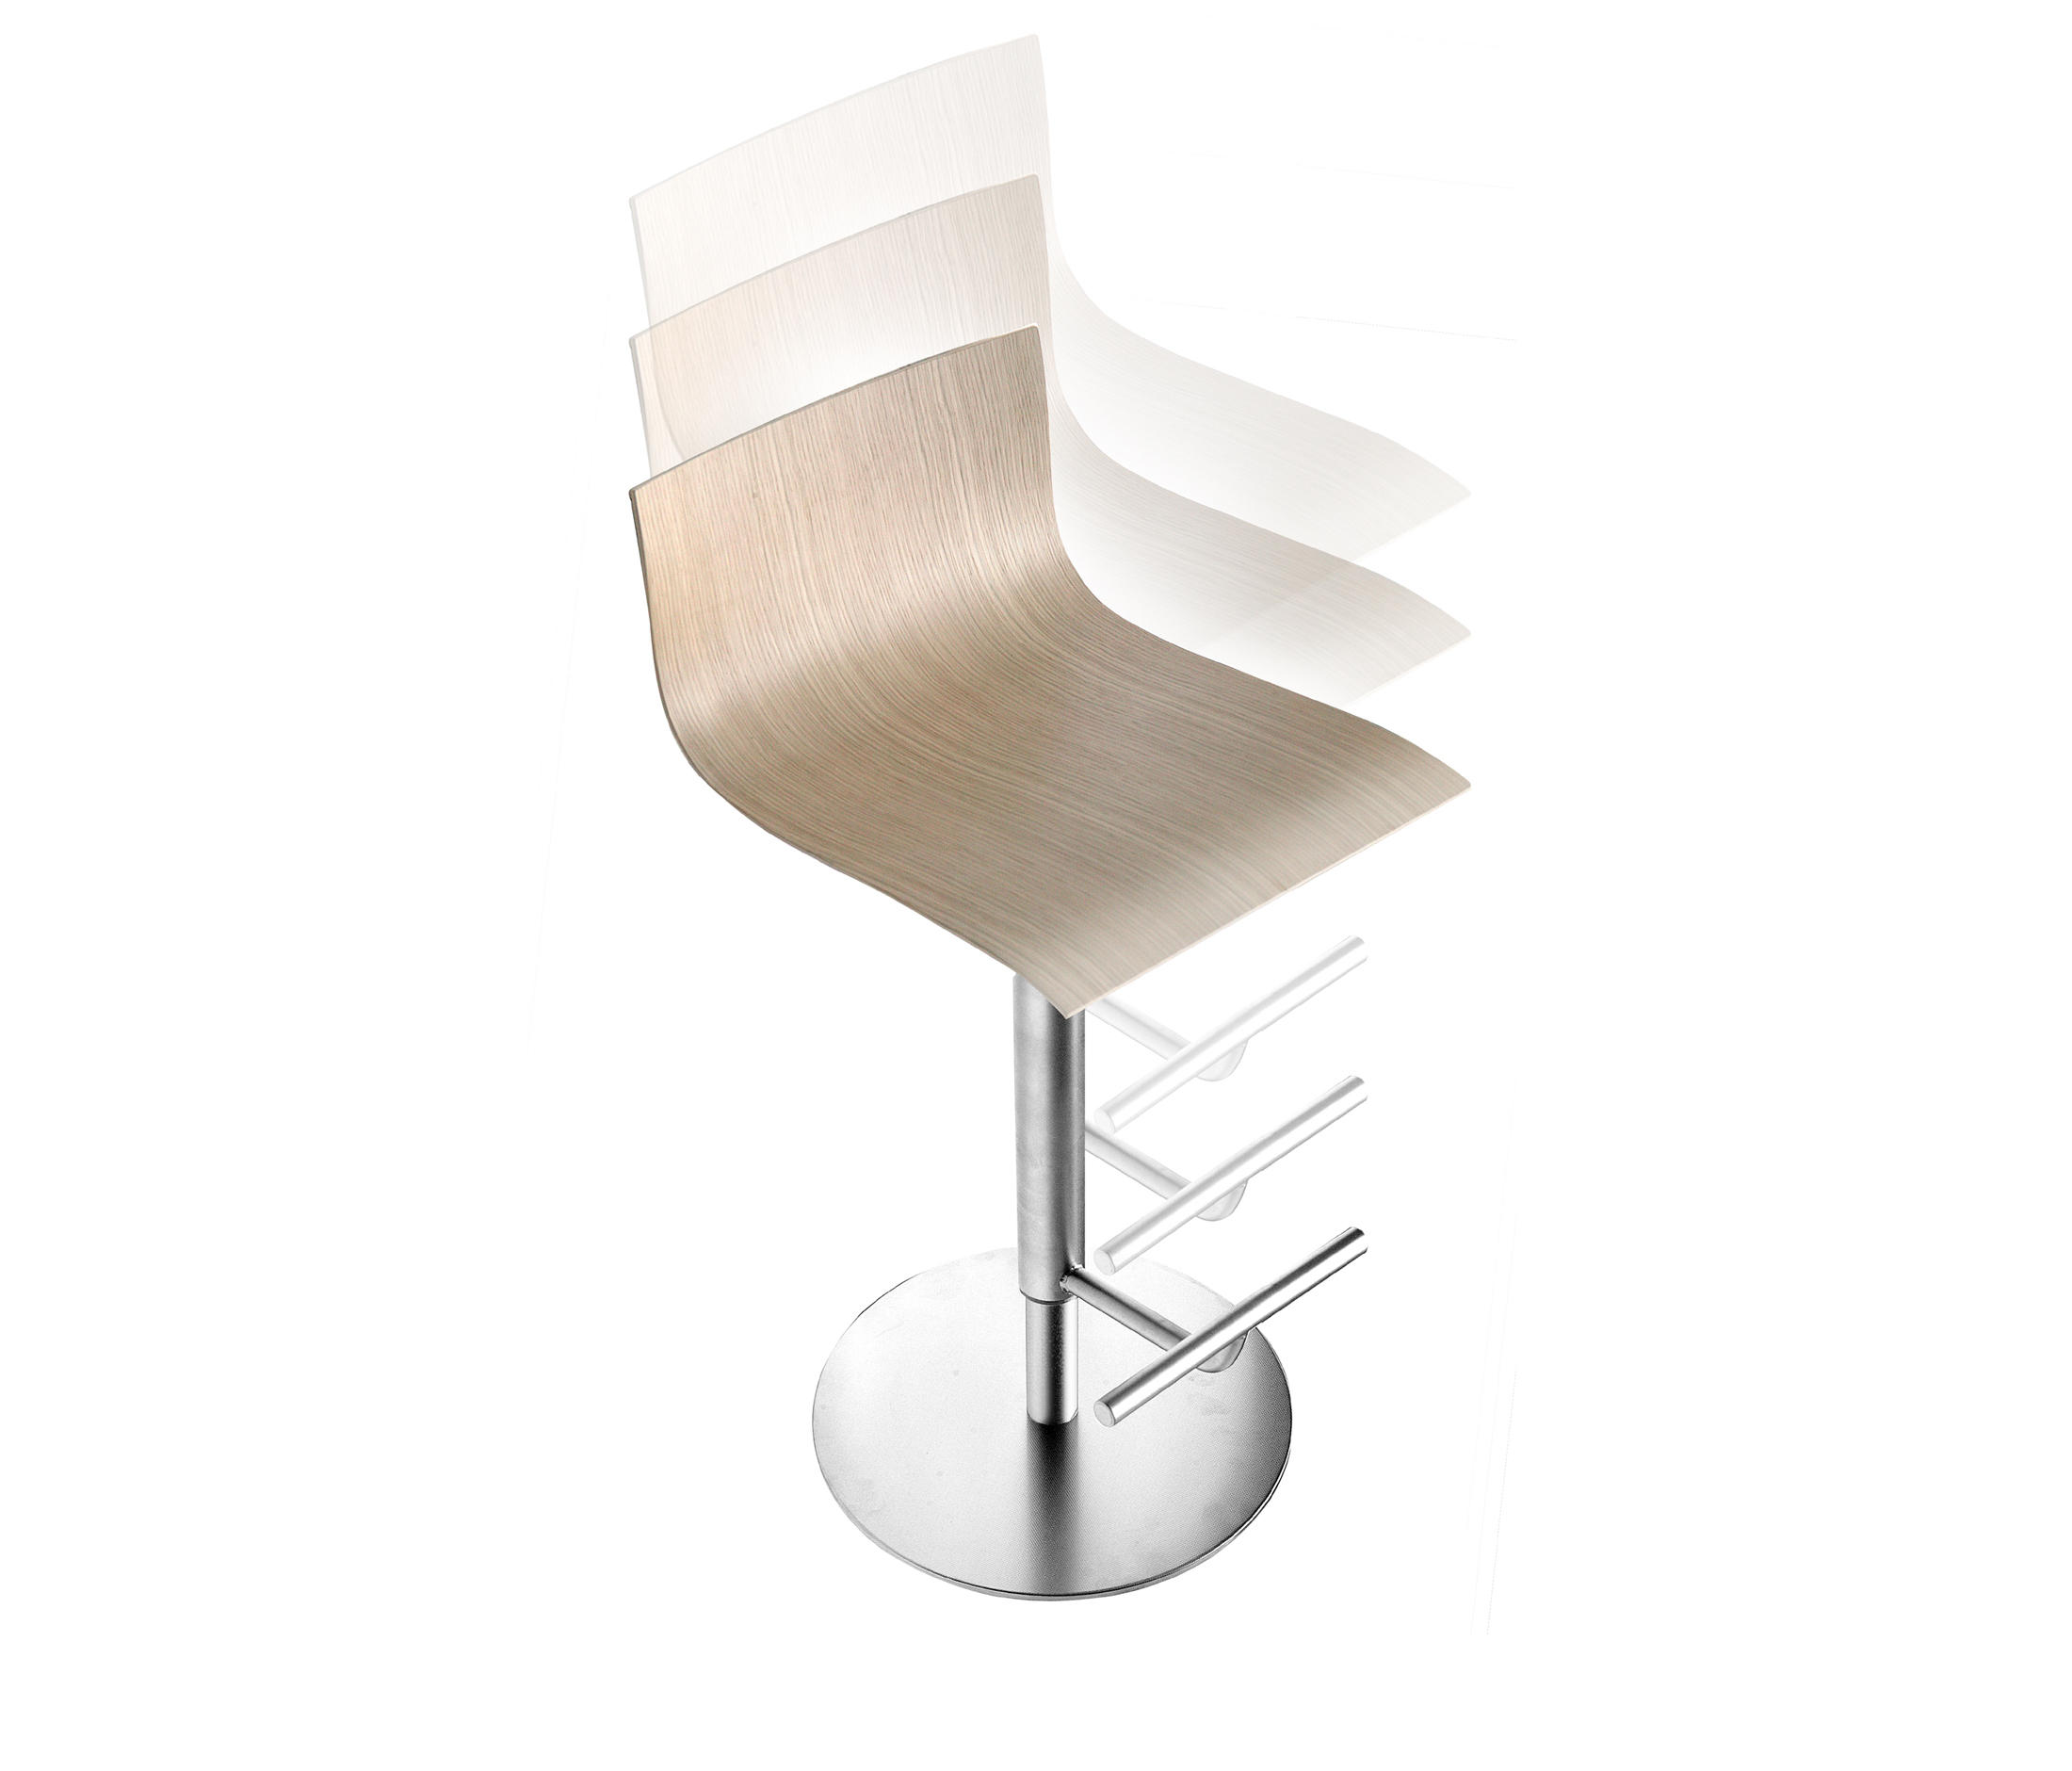 Awesome Thin Stool Bar Stools From Lapalma Architonic Squirreltailoven Fun Painted Chair Ideas Images Squirreltailovenorg